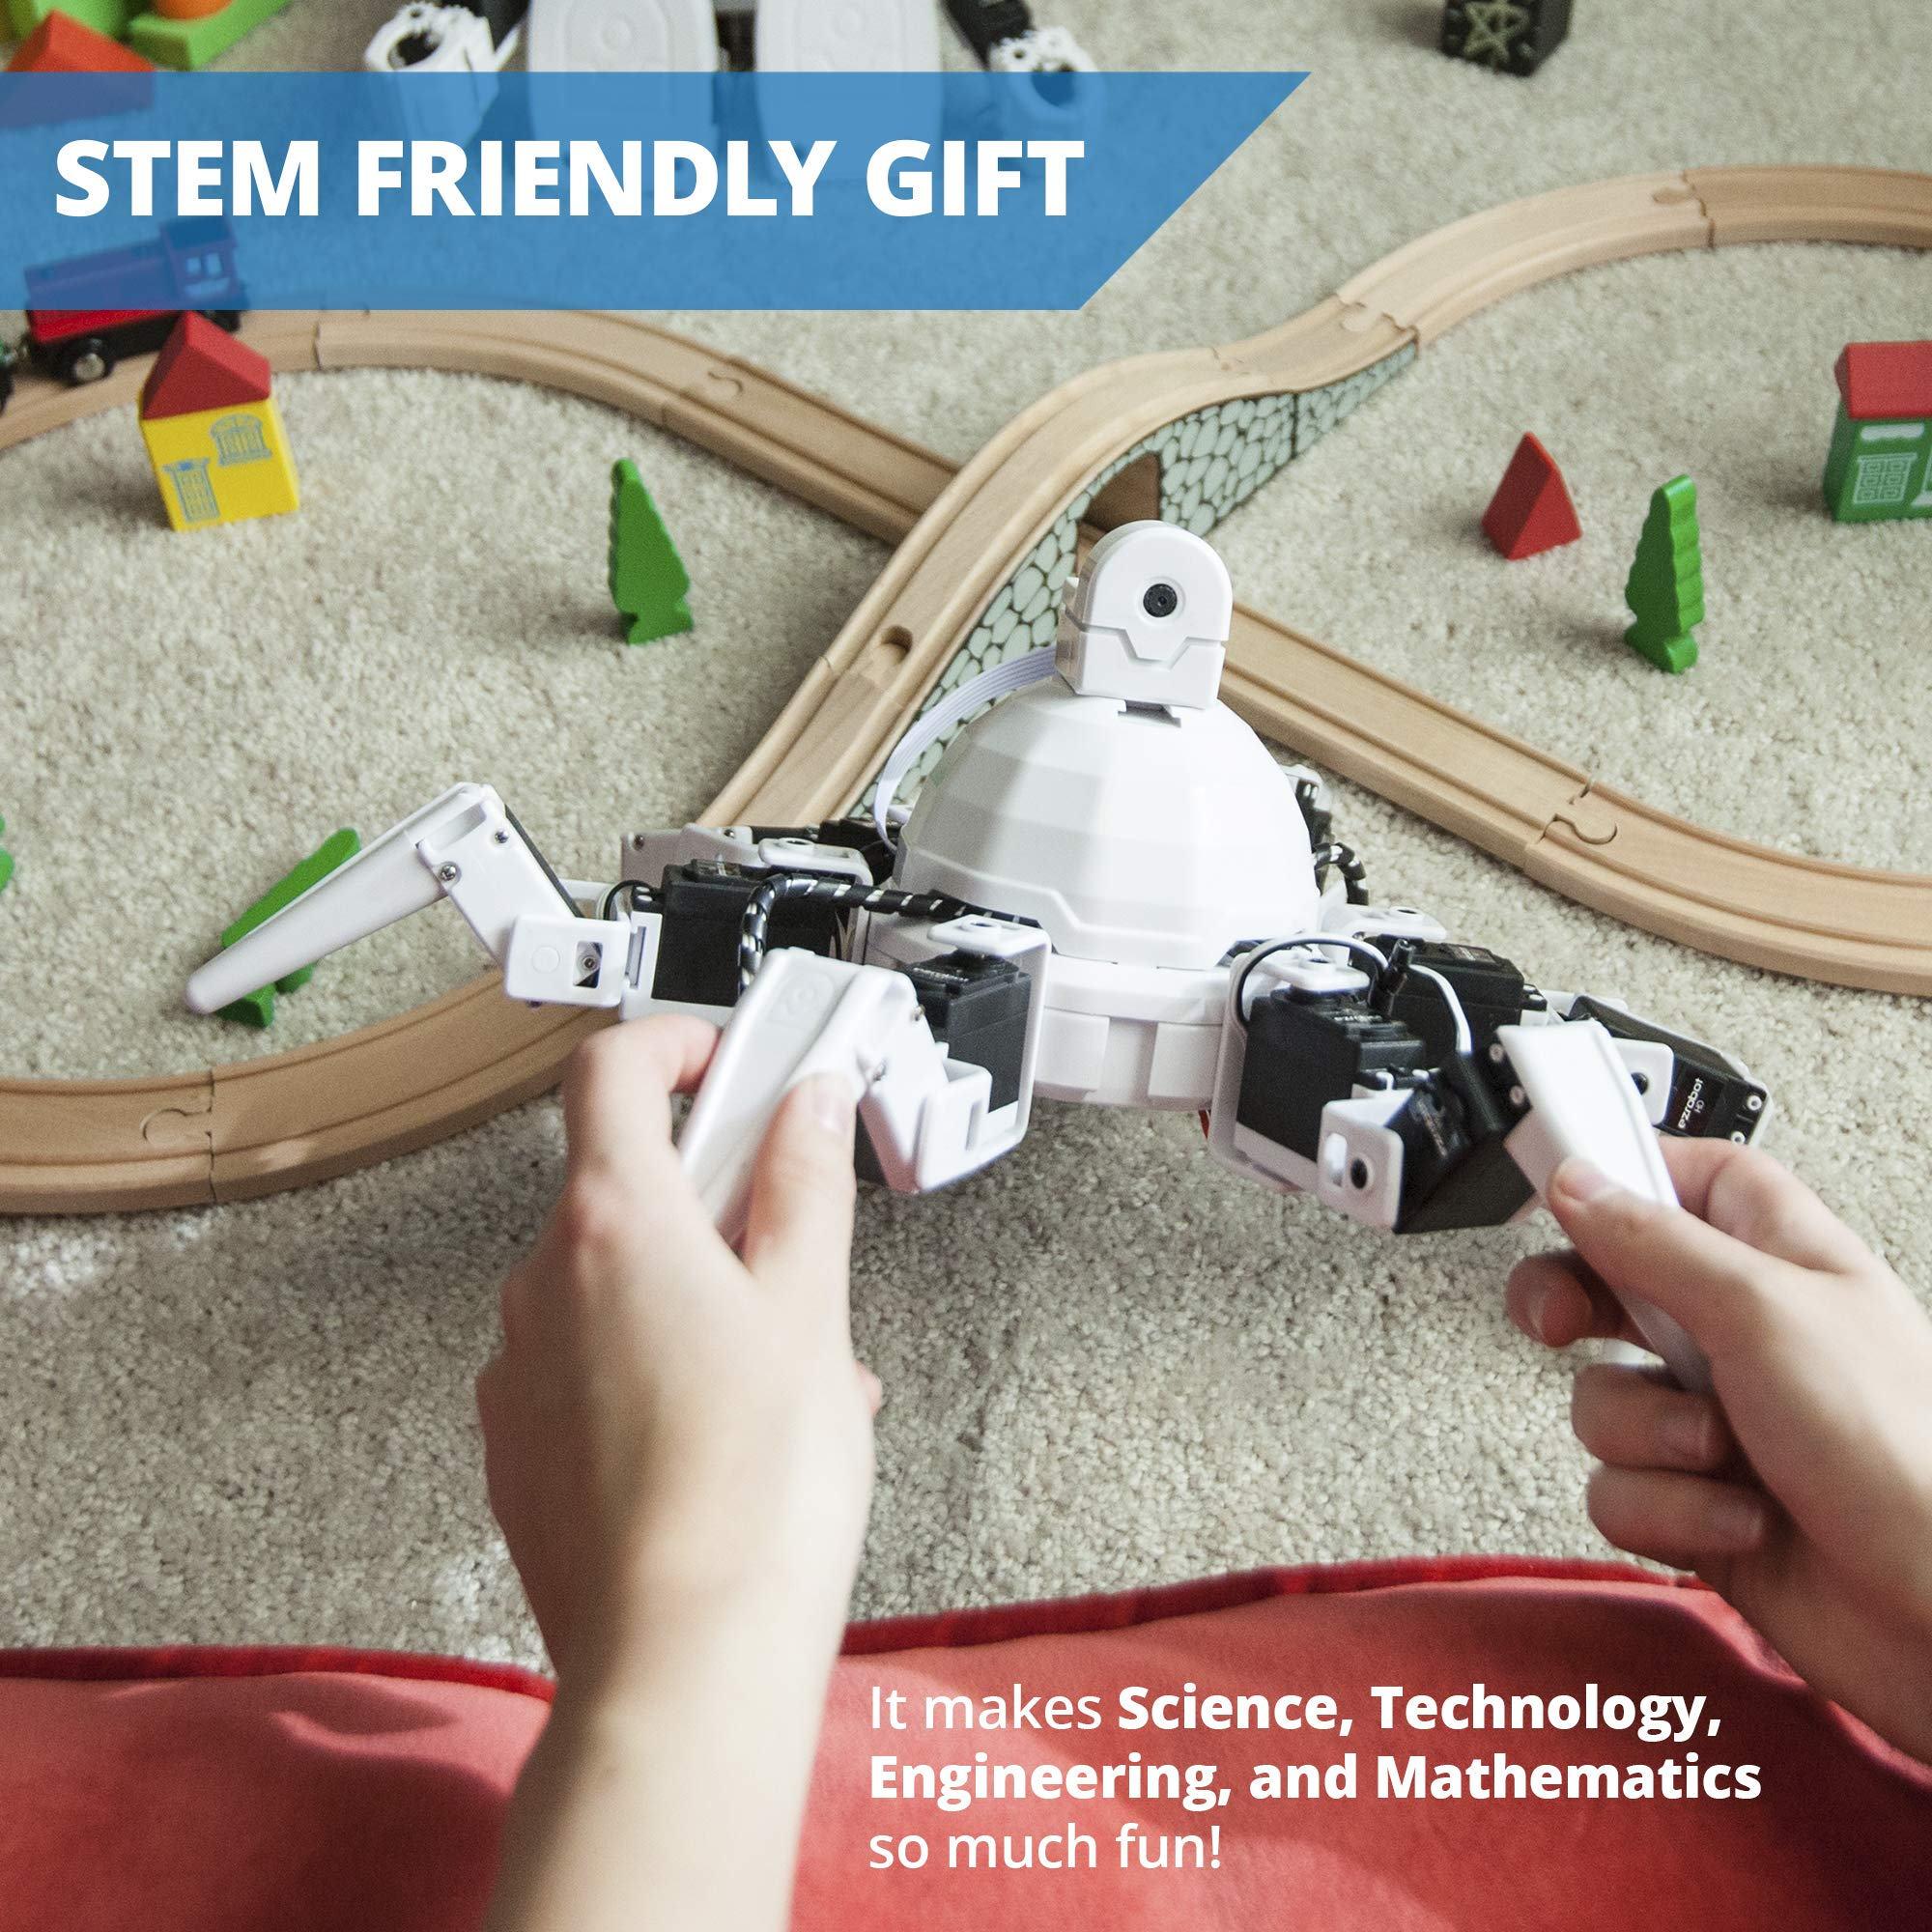 EZ-Robot Six Hexapod Kit DIY STEAM Educational Robotics Set for Kids & Adults Learning to Design & Build Programmable Electronic Robots by EZ-Robot (Image #3)